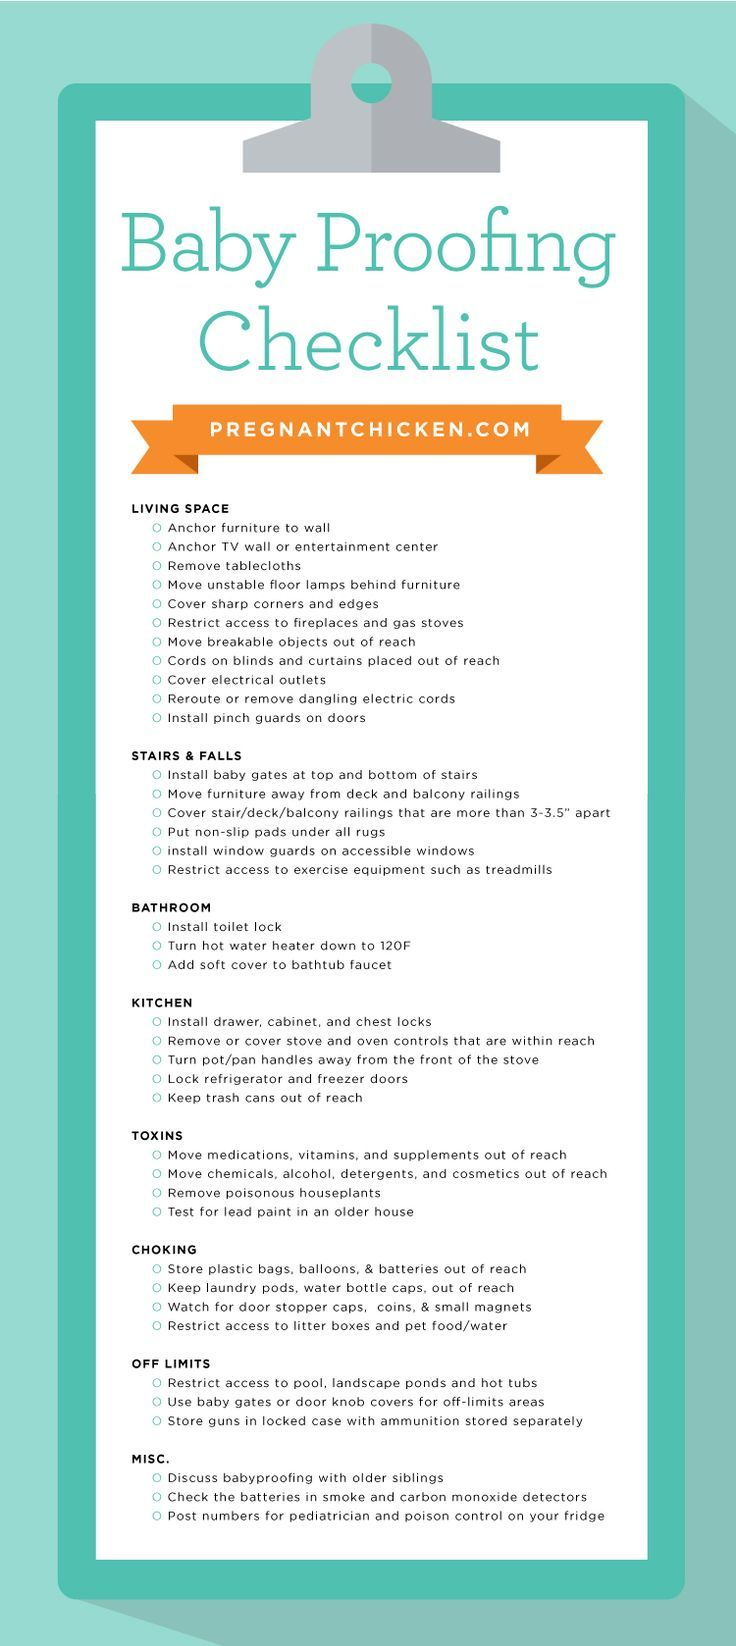 Baby Proofing Checklist 40 Ways To Make Your Space Safe Baby Proofing Baby Supplies Baby Sleep Problems